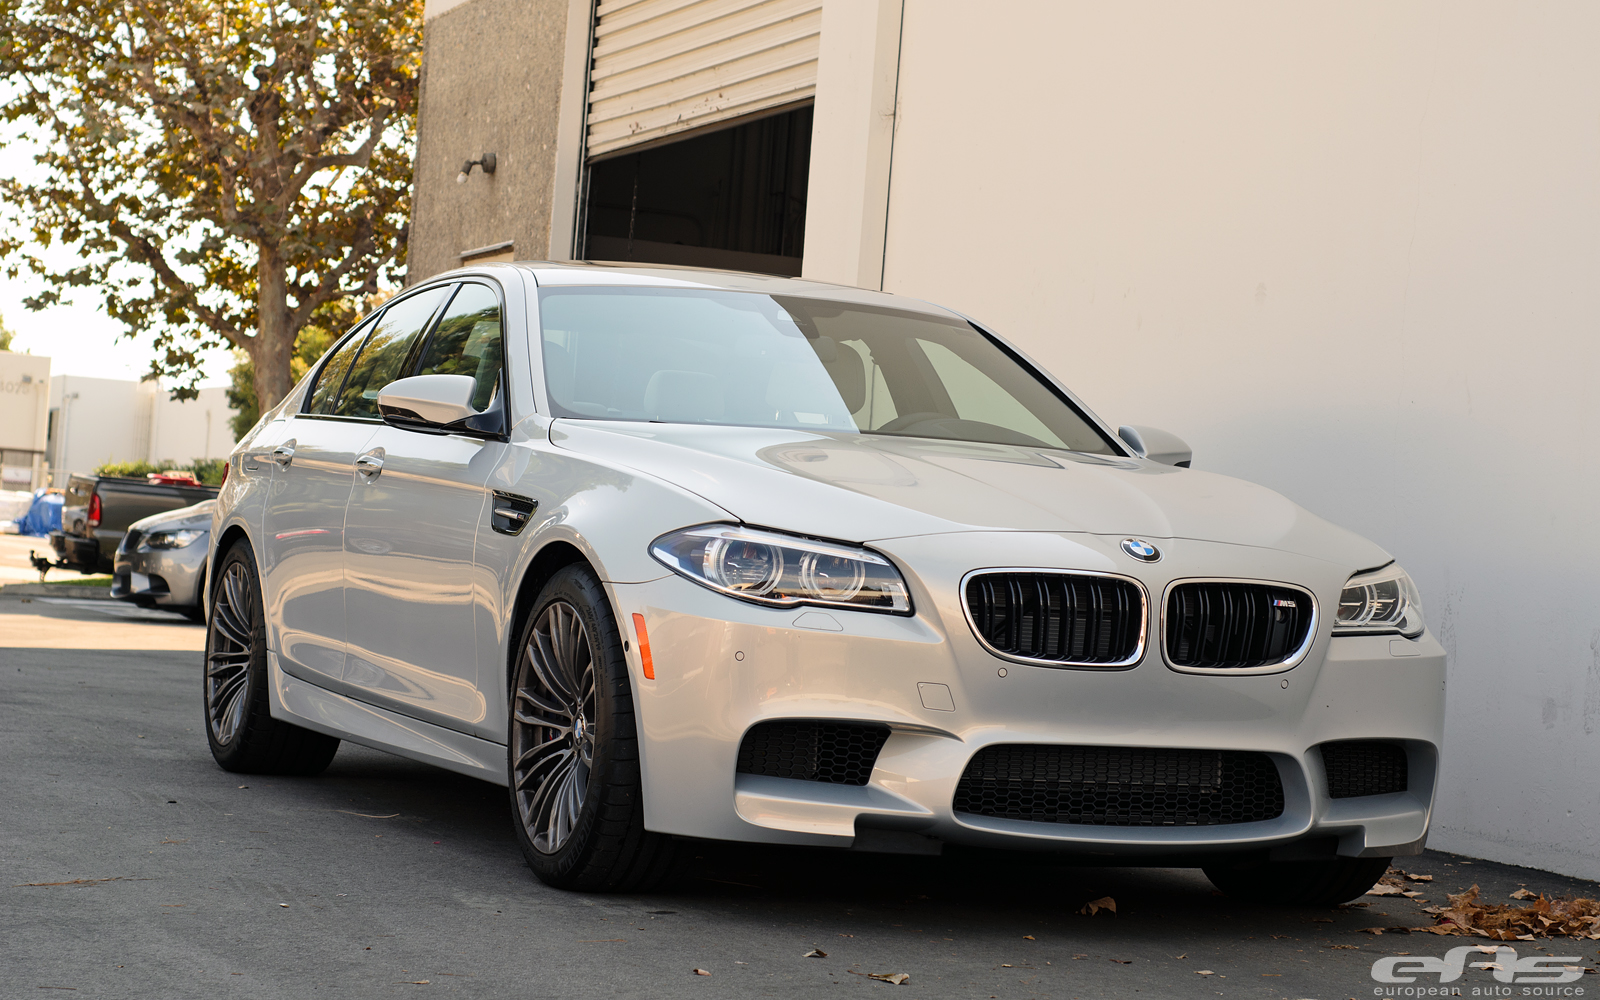 Live Photos Of The Lci Bmw F10 M5 At European Auto Source